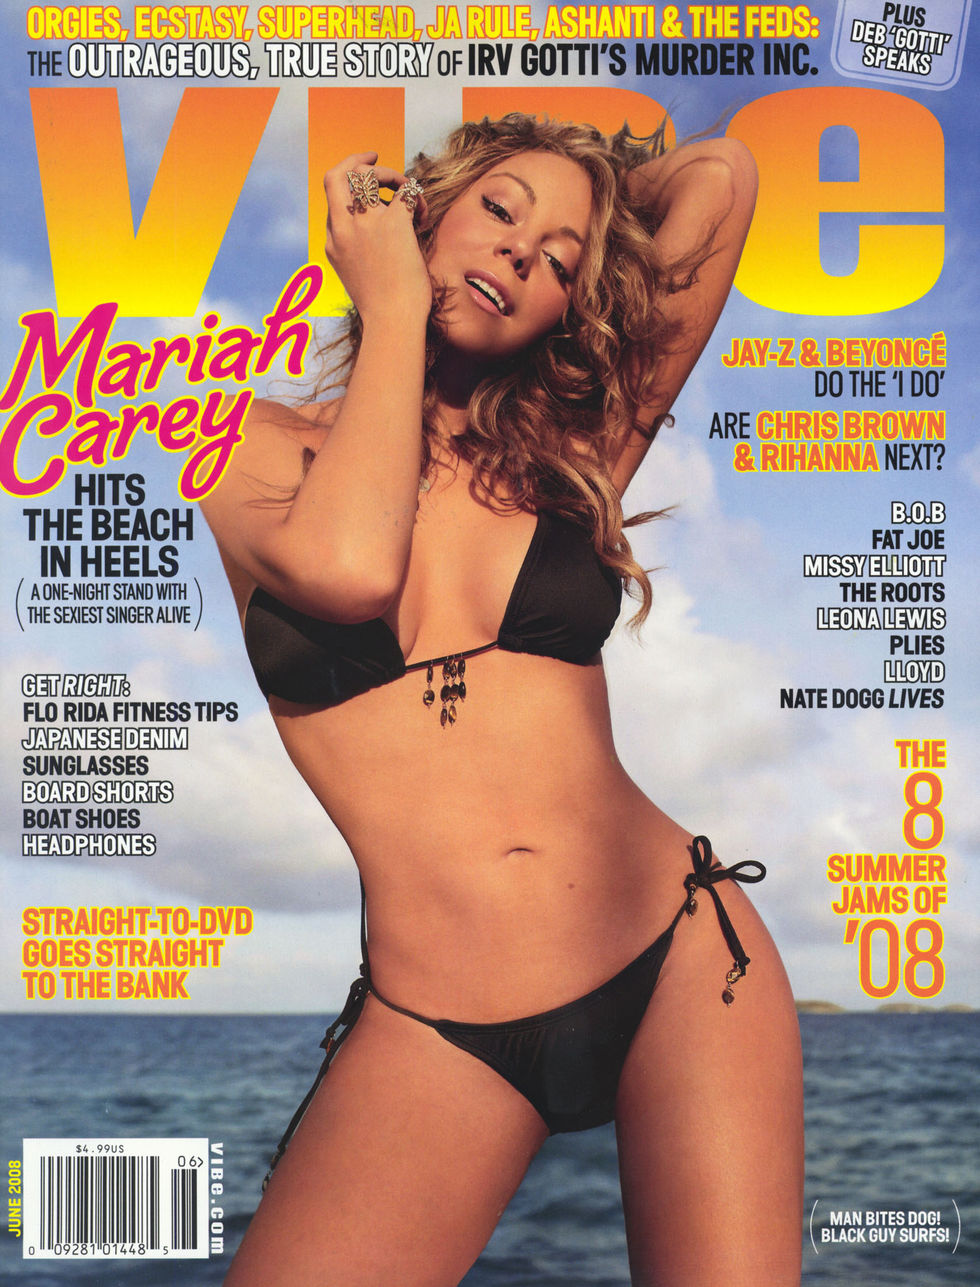 mariah-carey-in-bikini-on-cover-of-vibe-magazine-june-2008-01